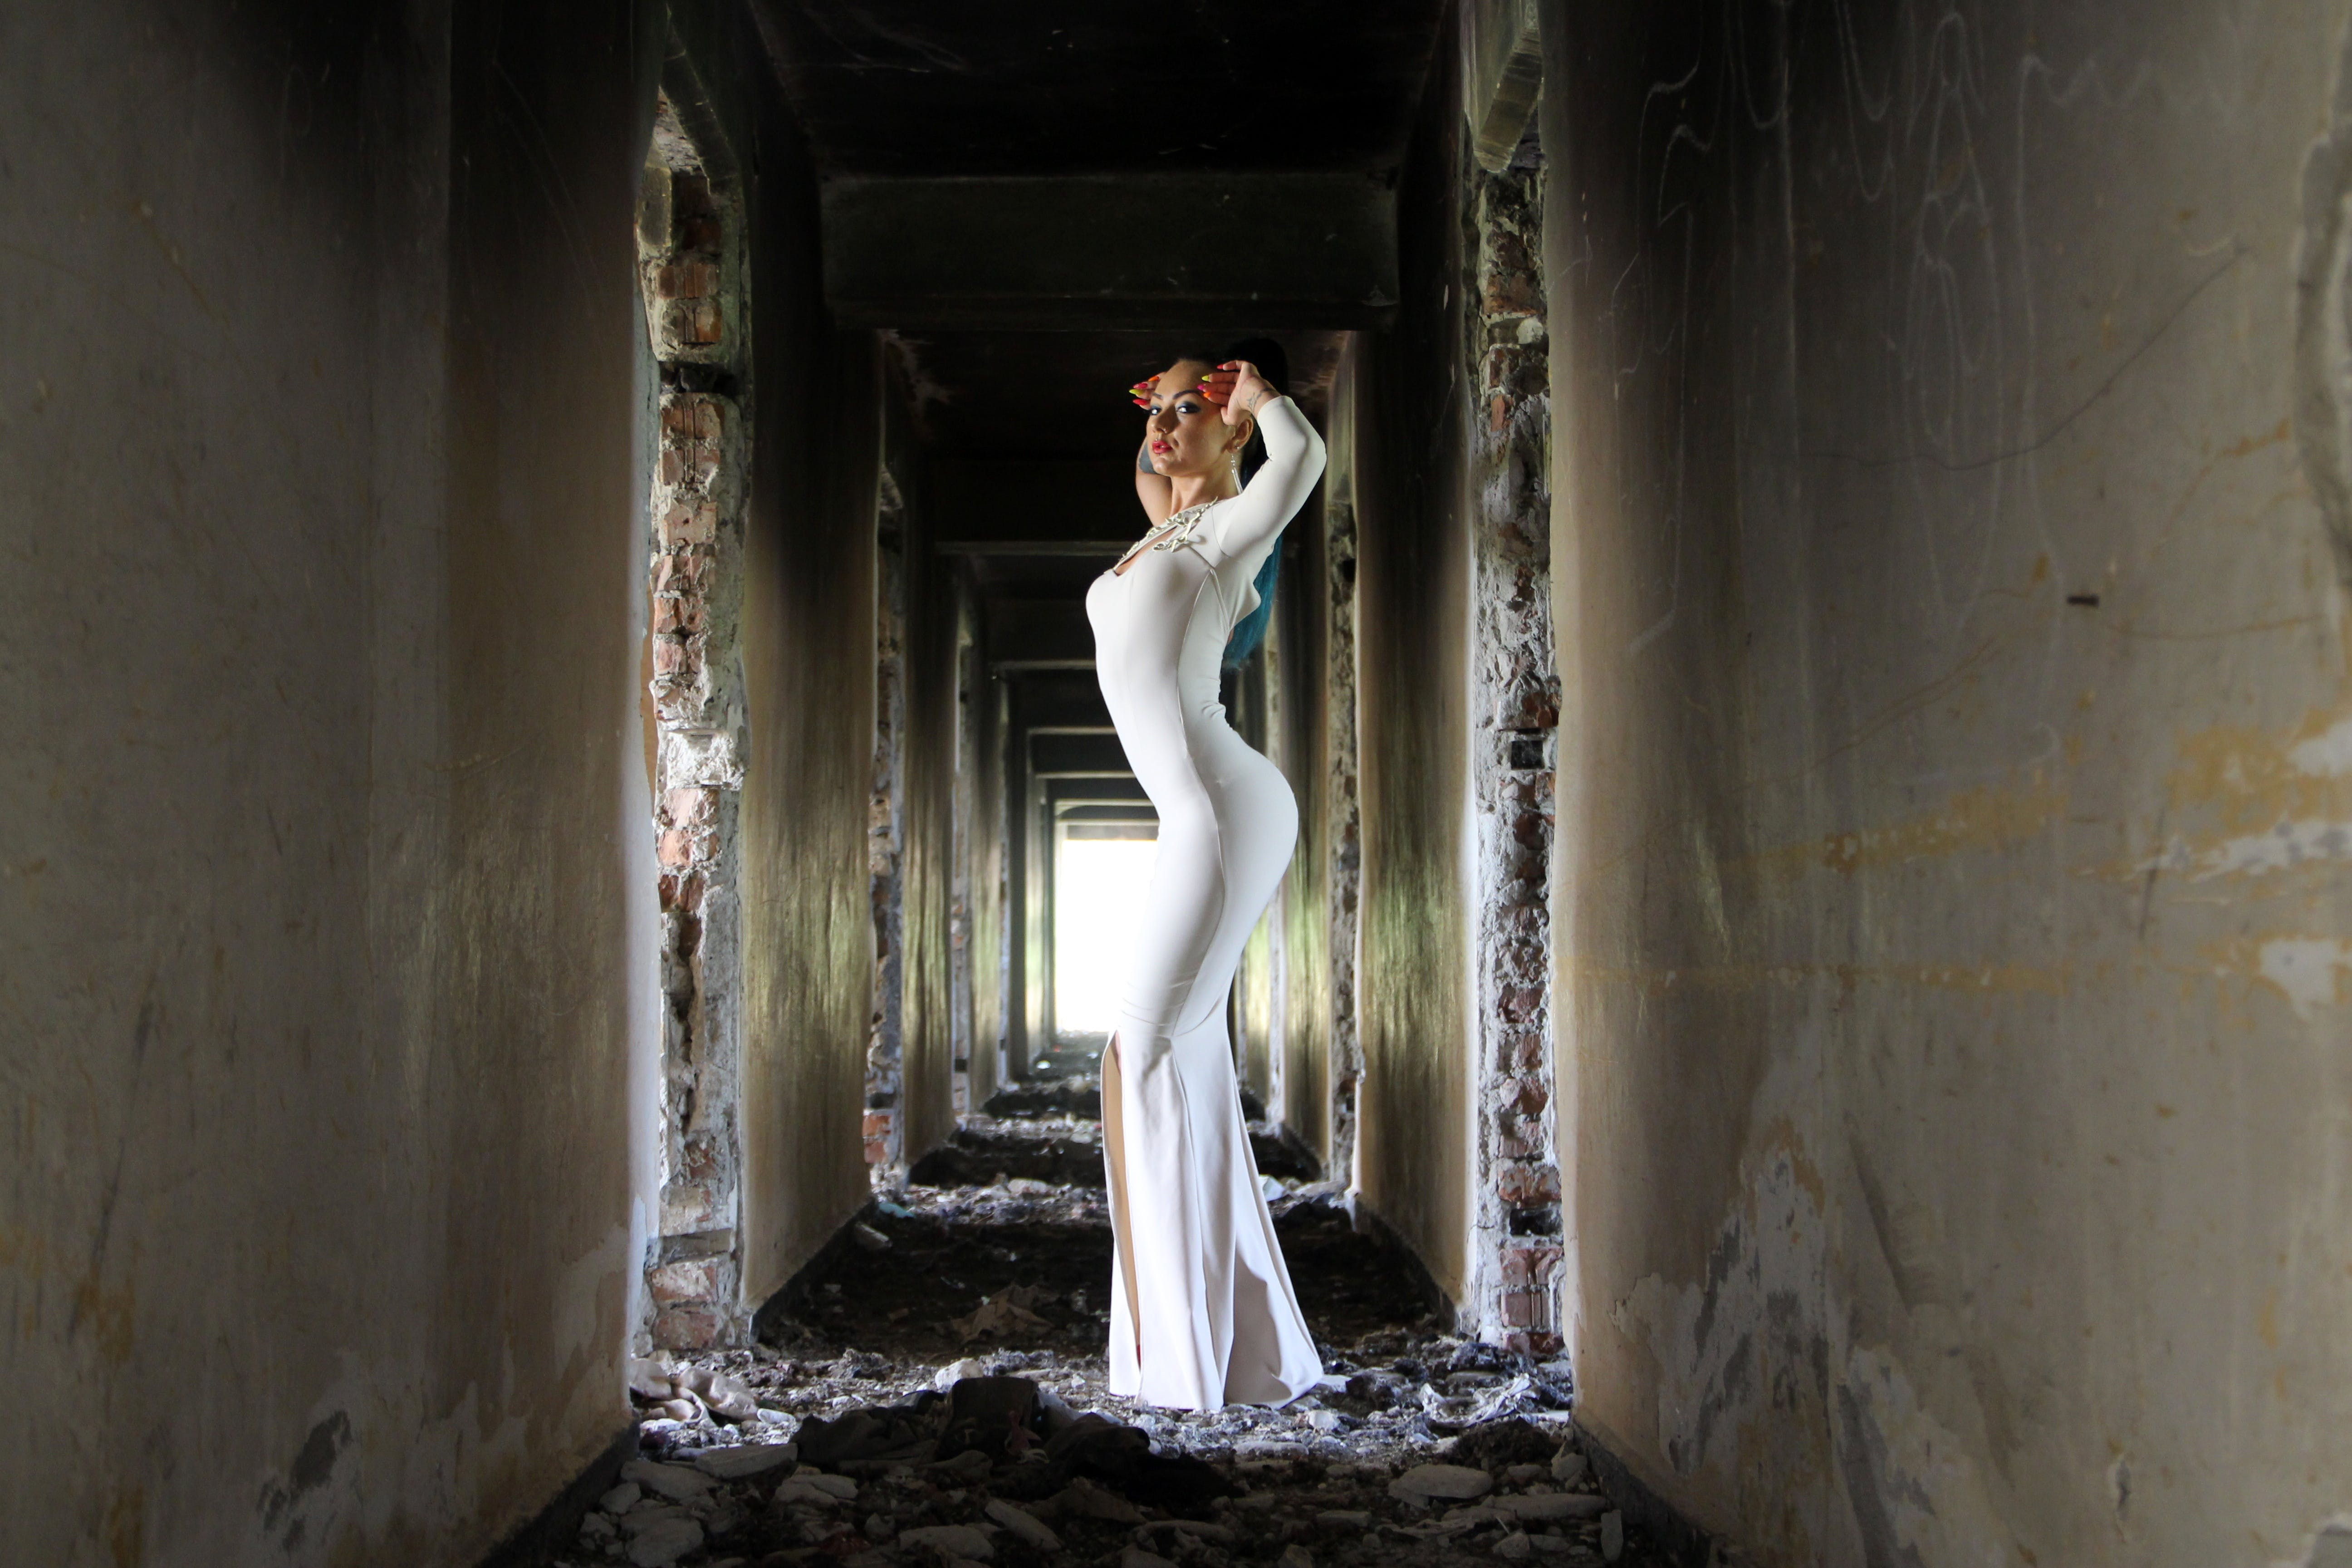 Woman in White Bodycon Maxi Dress Posting in Between White Concrete Wall